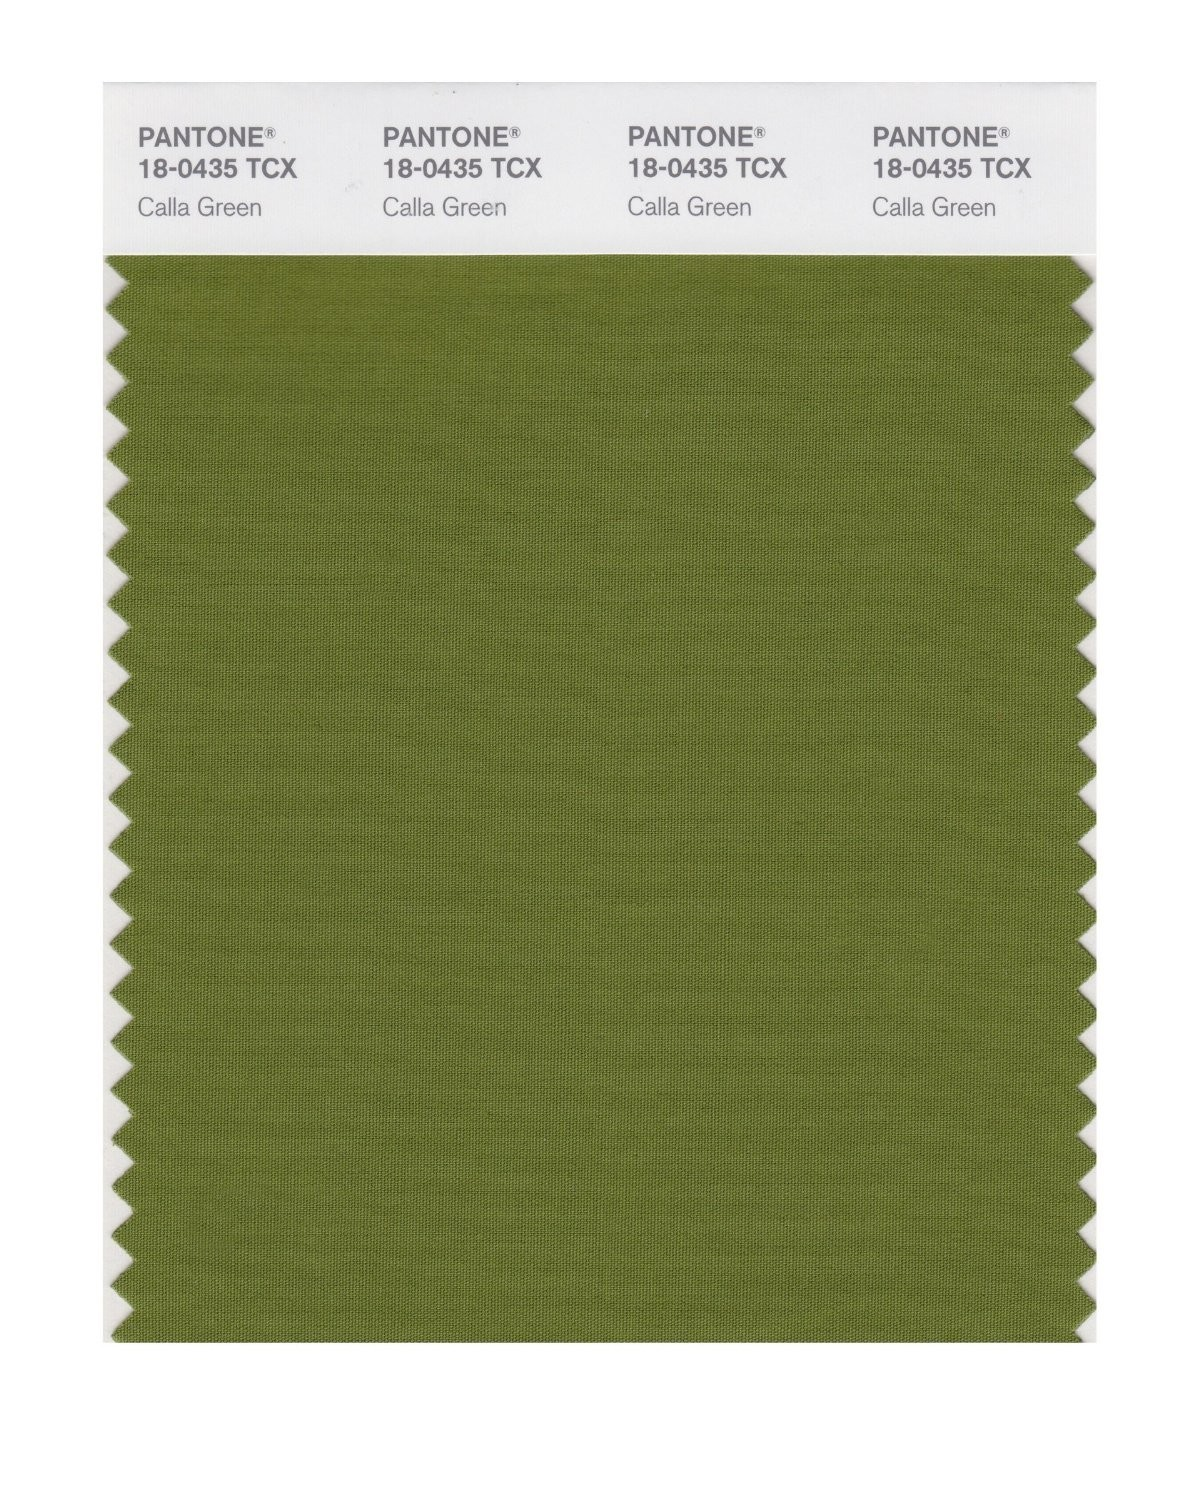 Pantone 18-0435 TCX Swatch Card Calla Green